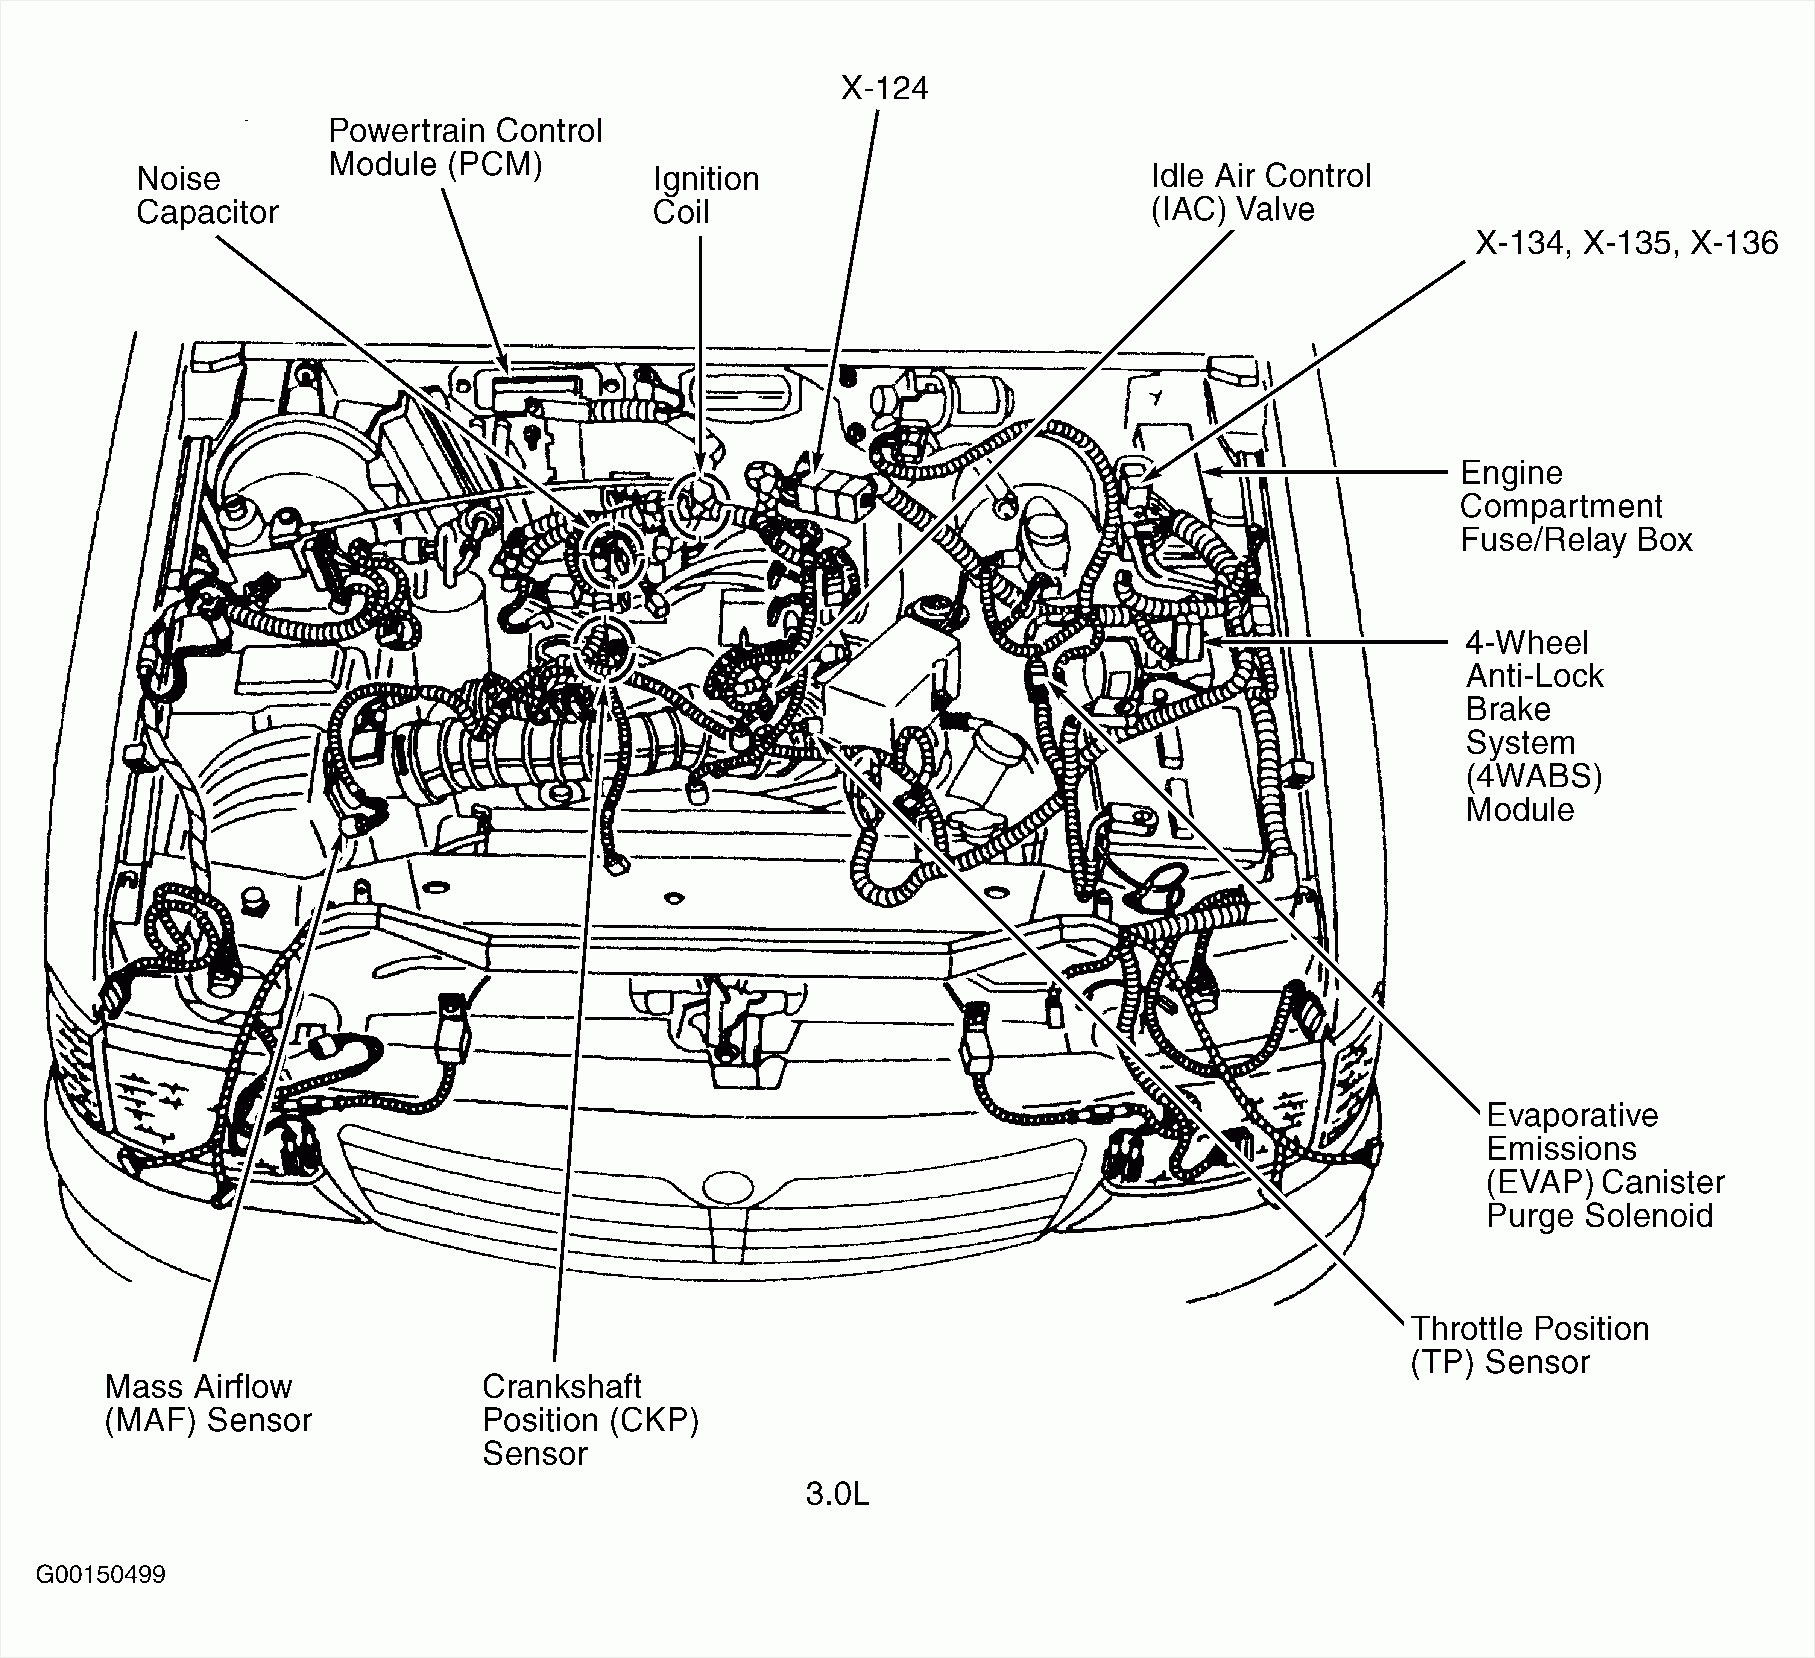 2001 Saturn L200 Engine Diagram V6 Great Installation Of Wiring 2002 Vue Cooling System Library Rh 69 Codingcommunity De 2003 L300 2005